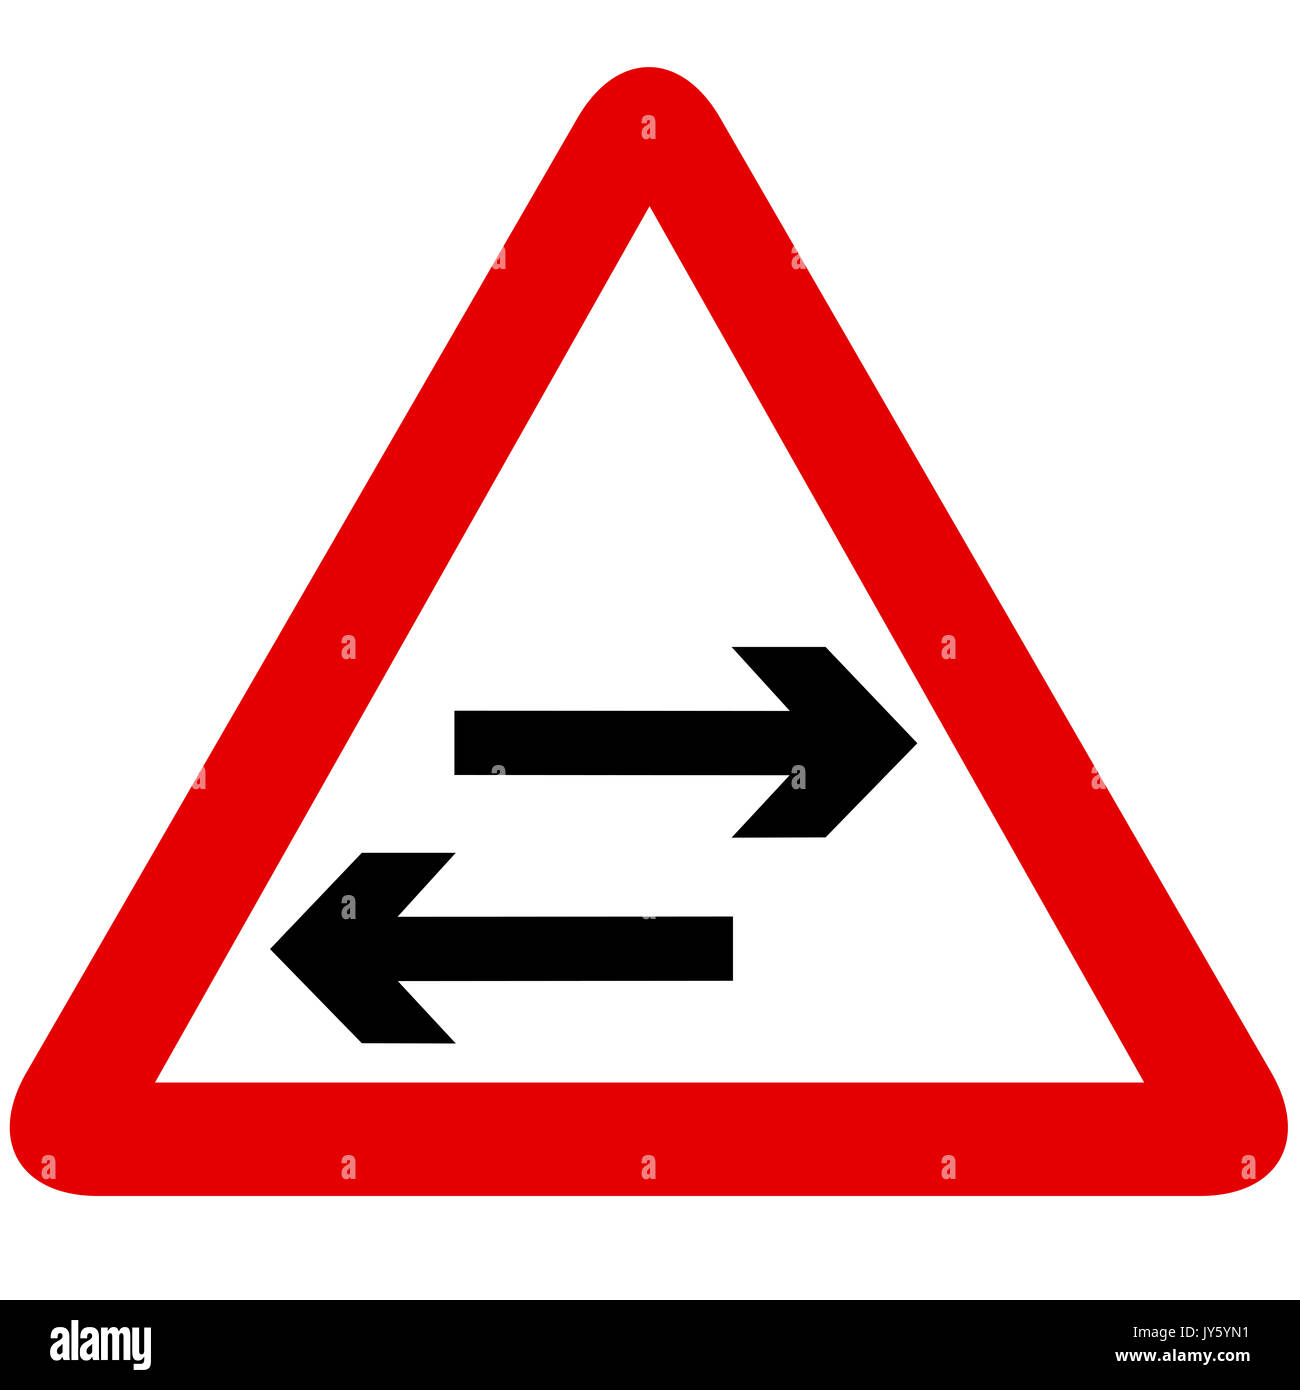 Two Way Traffic Crosses One Way Road Road Sign On White Background